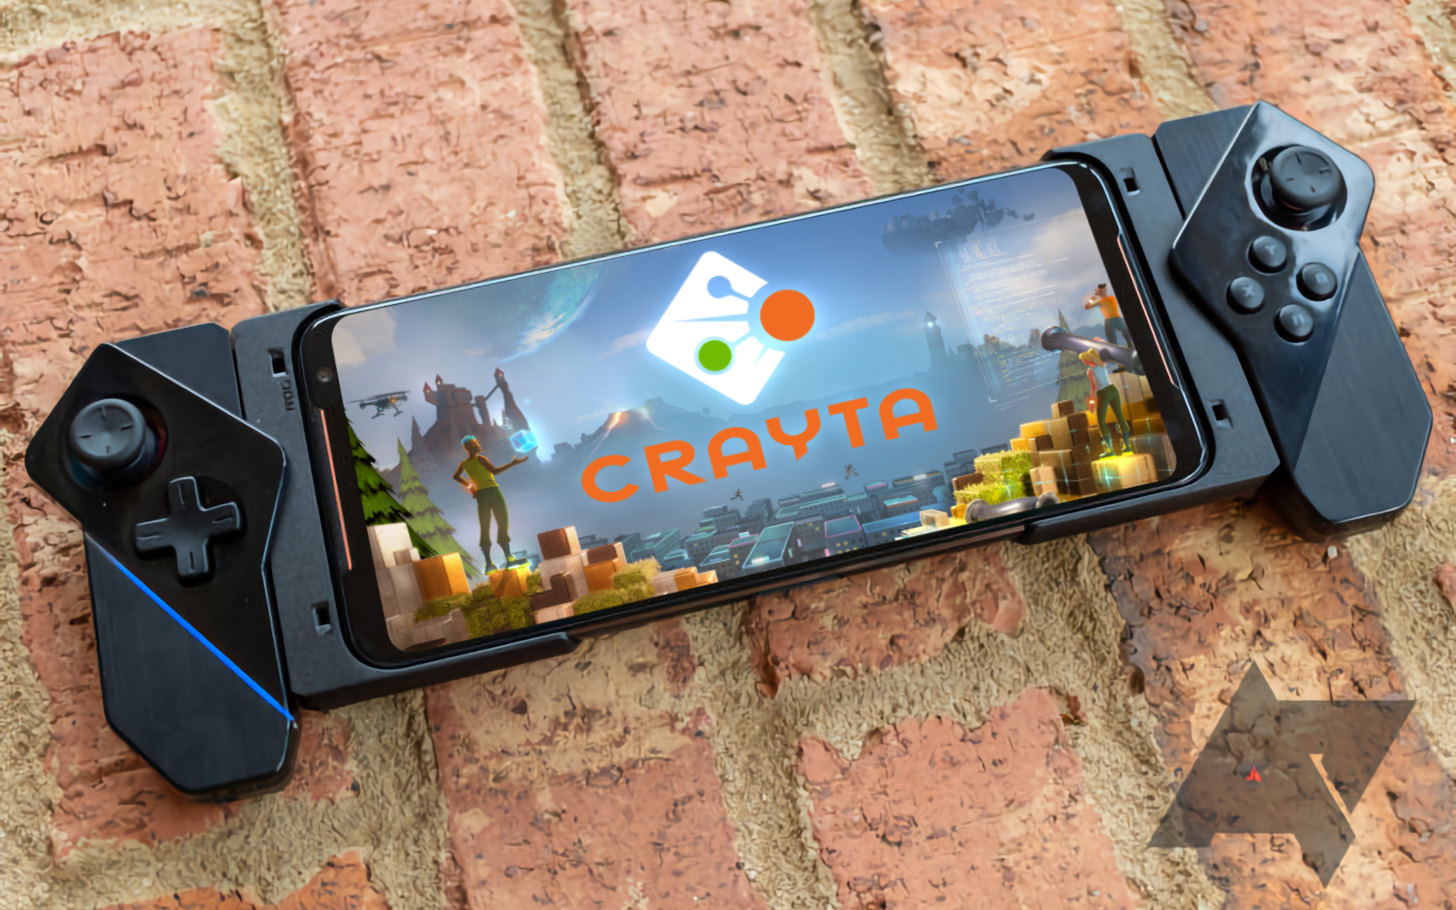 Hands on with Crayta, an ambitious Stadia exclusive that will certainly die without a strong creator community